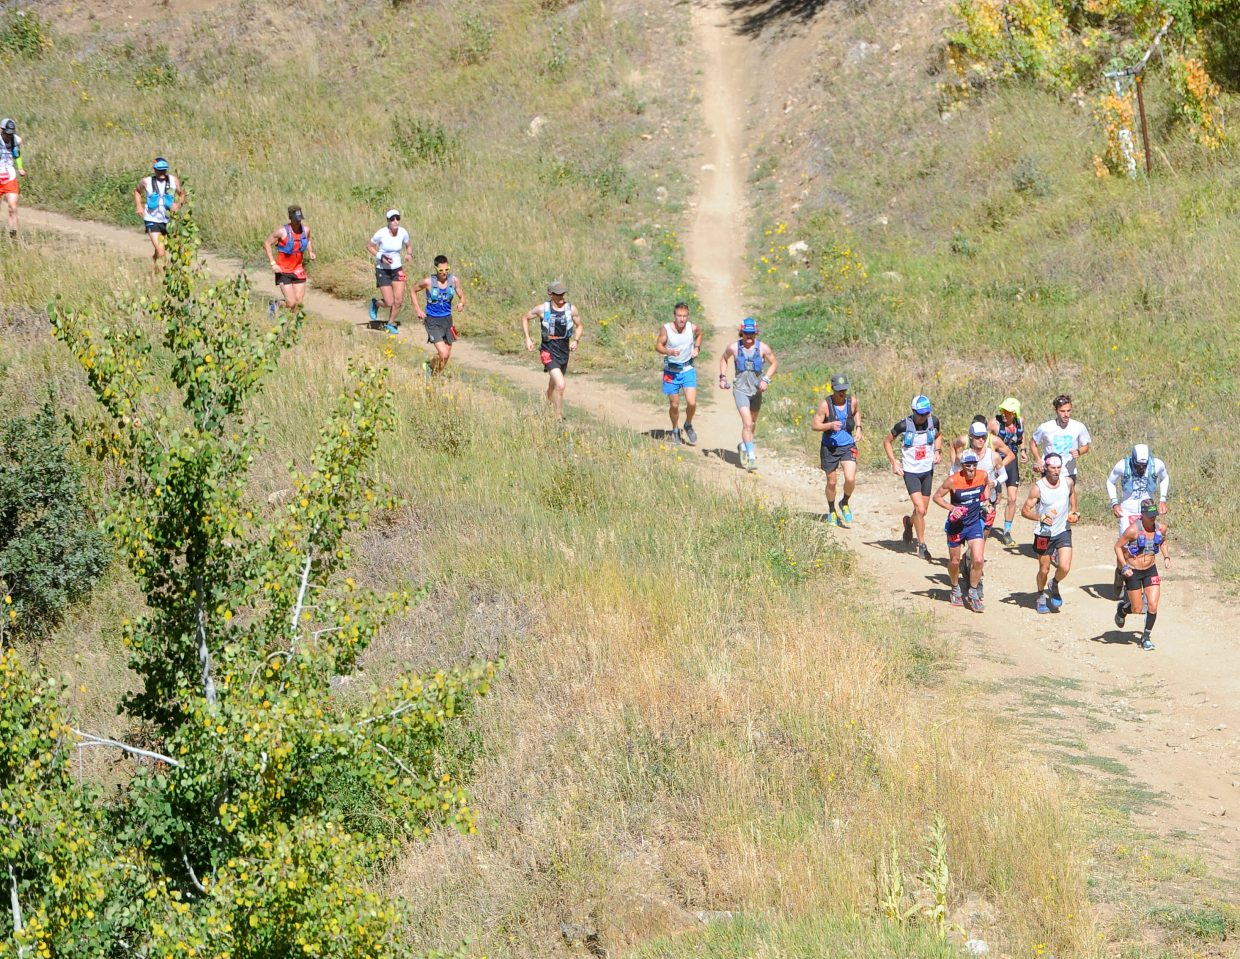 Runners in the hare division of the Run Rabbit Run 100 started their race at noon on Friday, Sept. 14. The Hare division includes elite ultra runners competing for a $13,500 prize. Pictured is a group of hares beginning their ascent up Steamboat Ski Area.